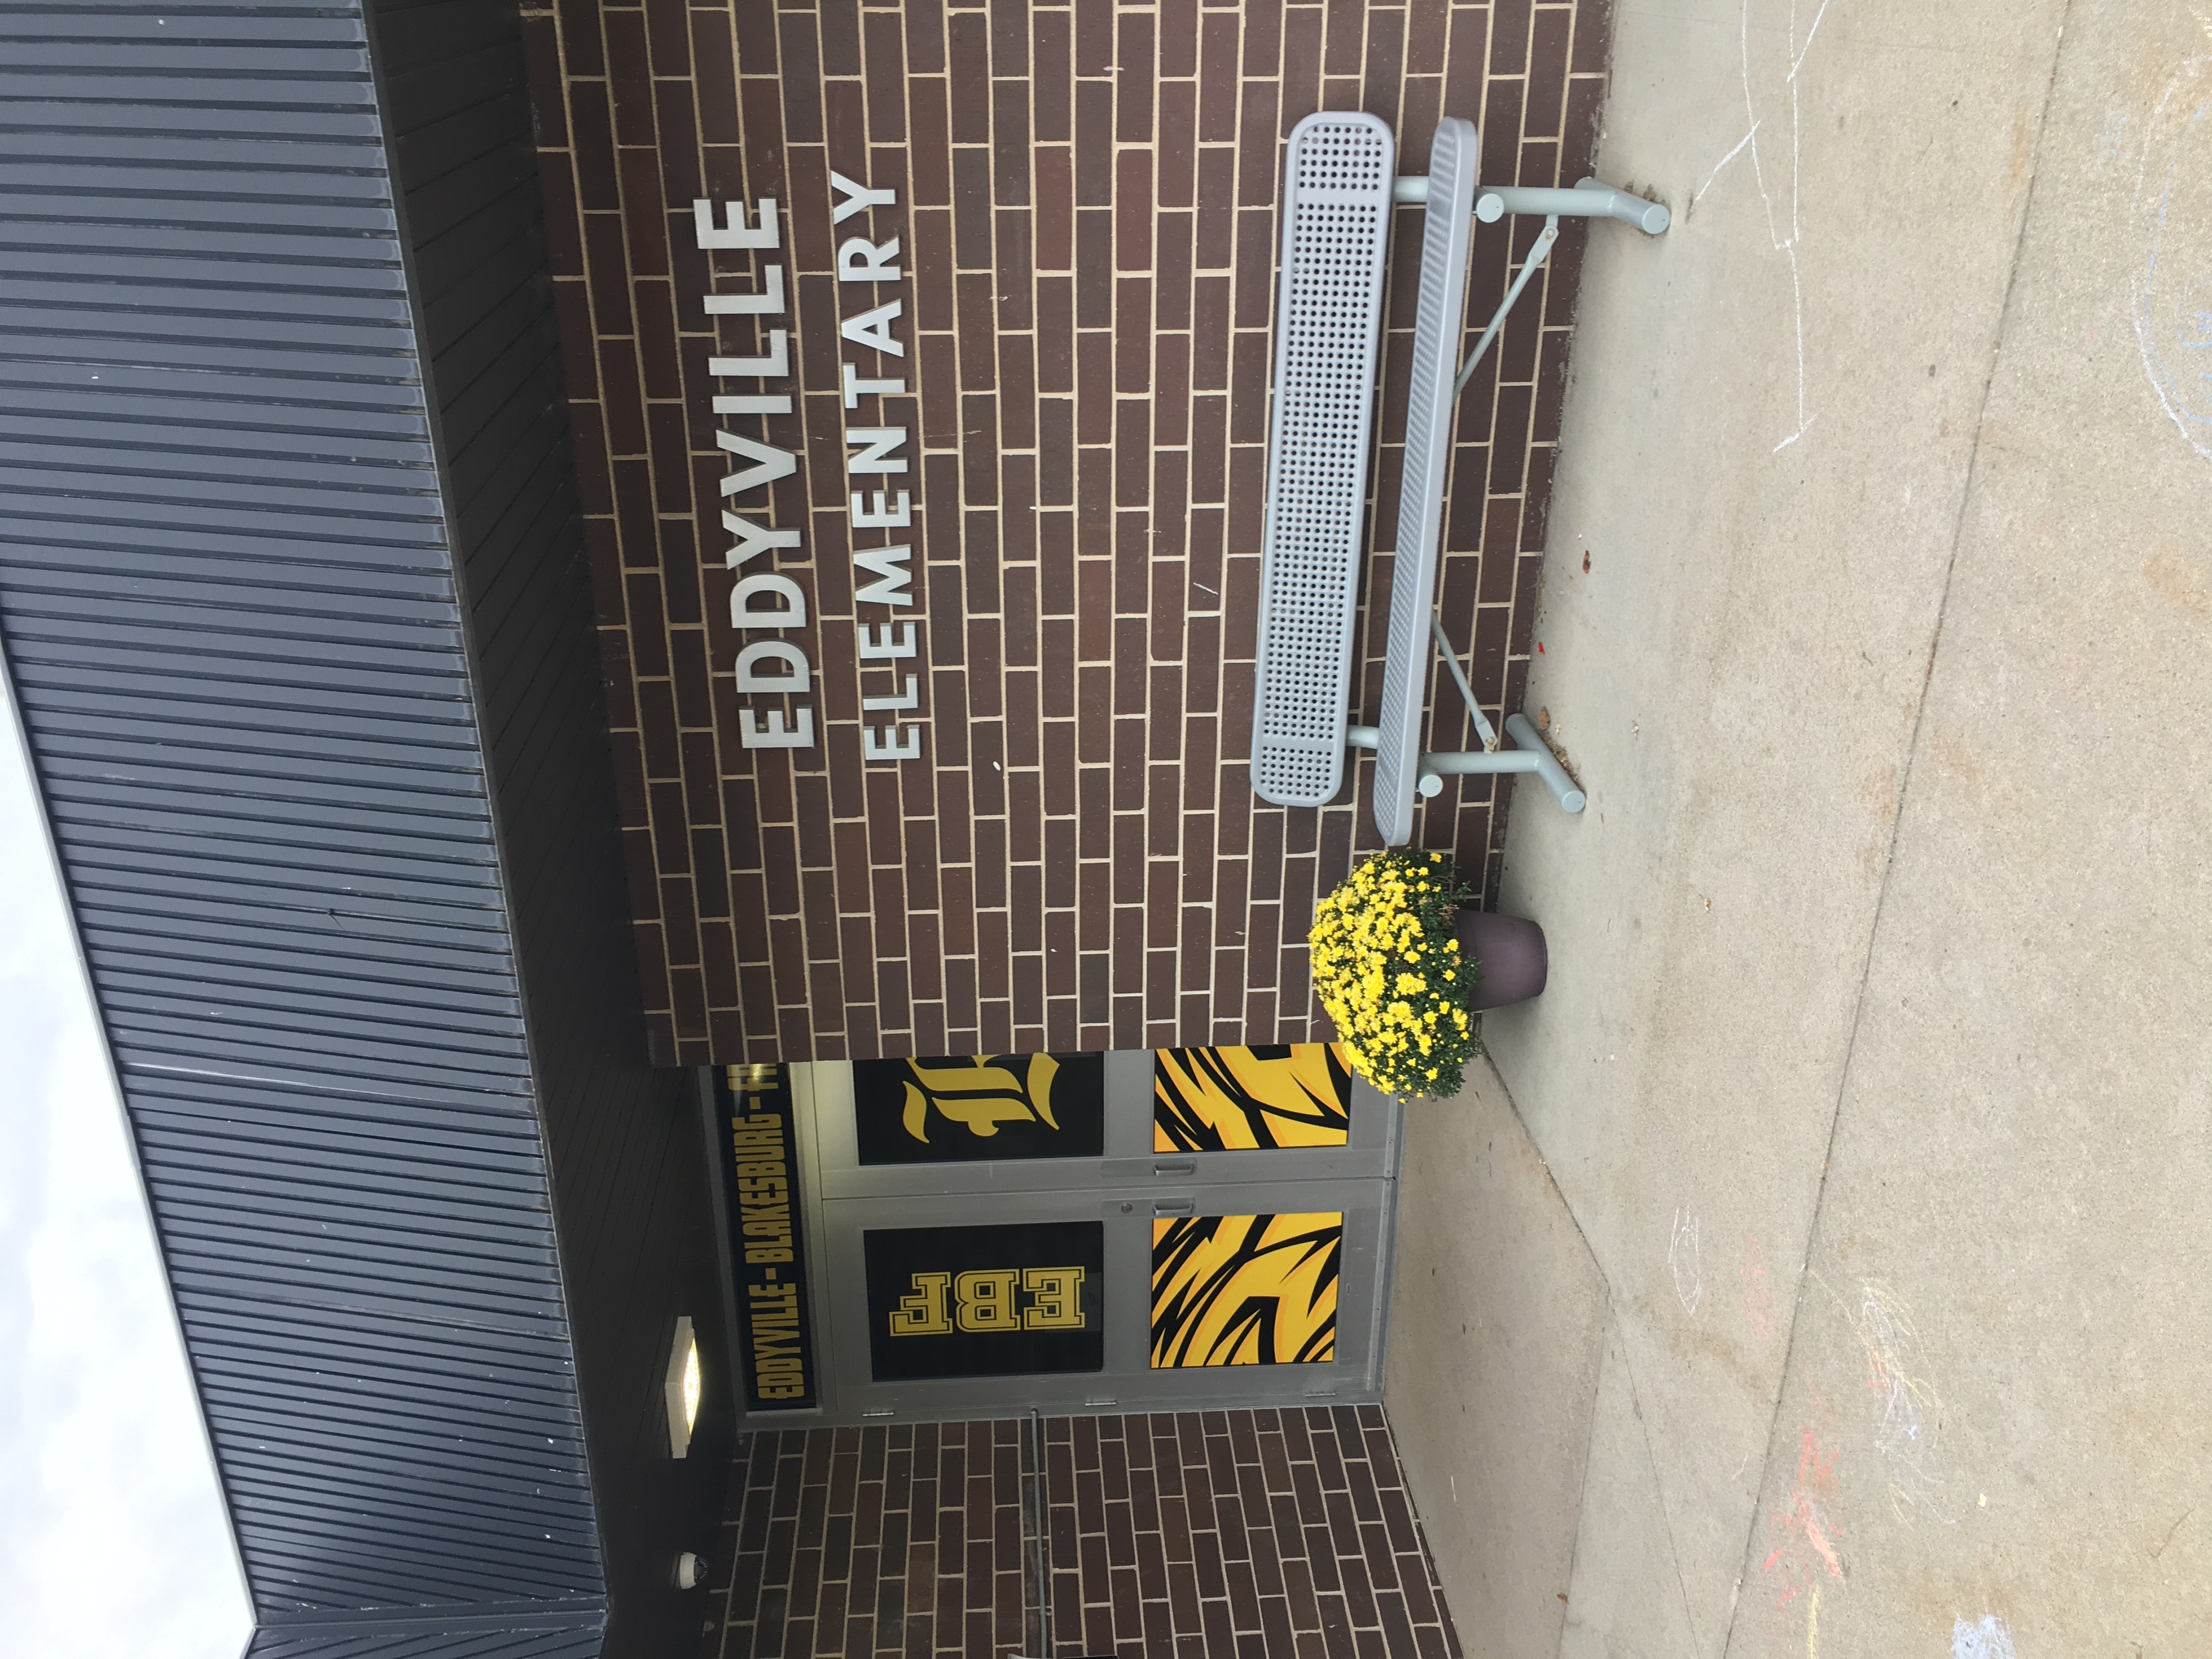 Eddyville Elementary front of building